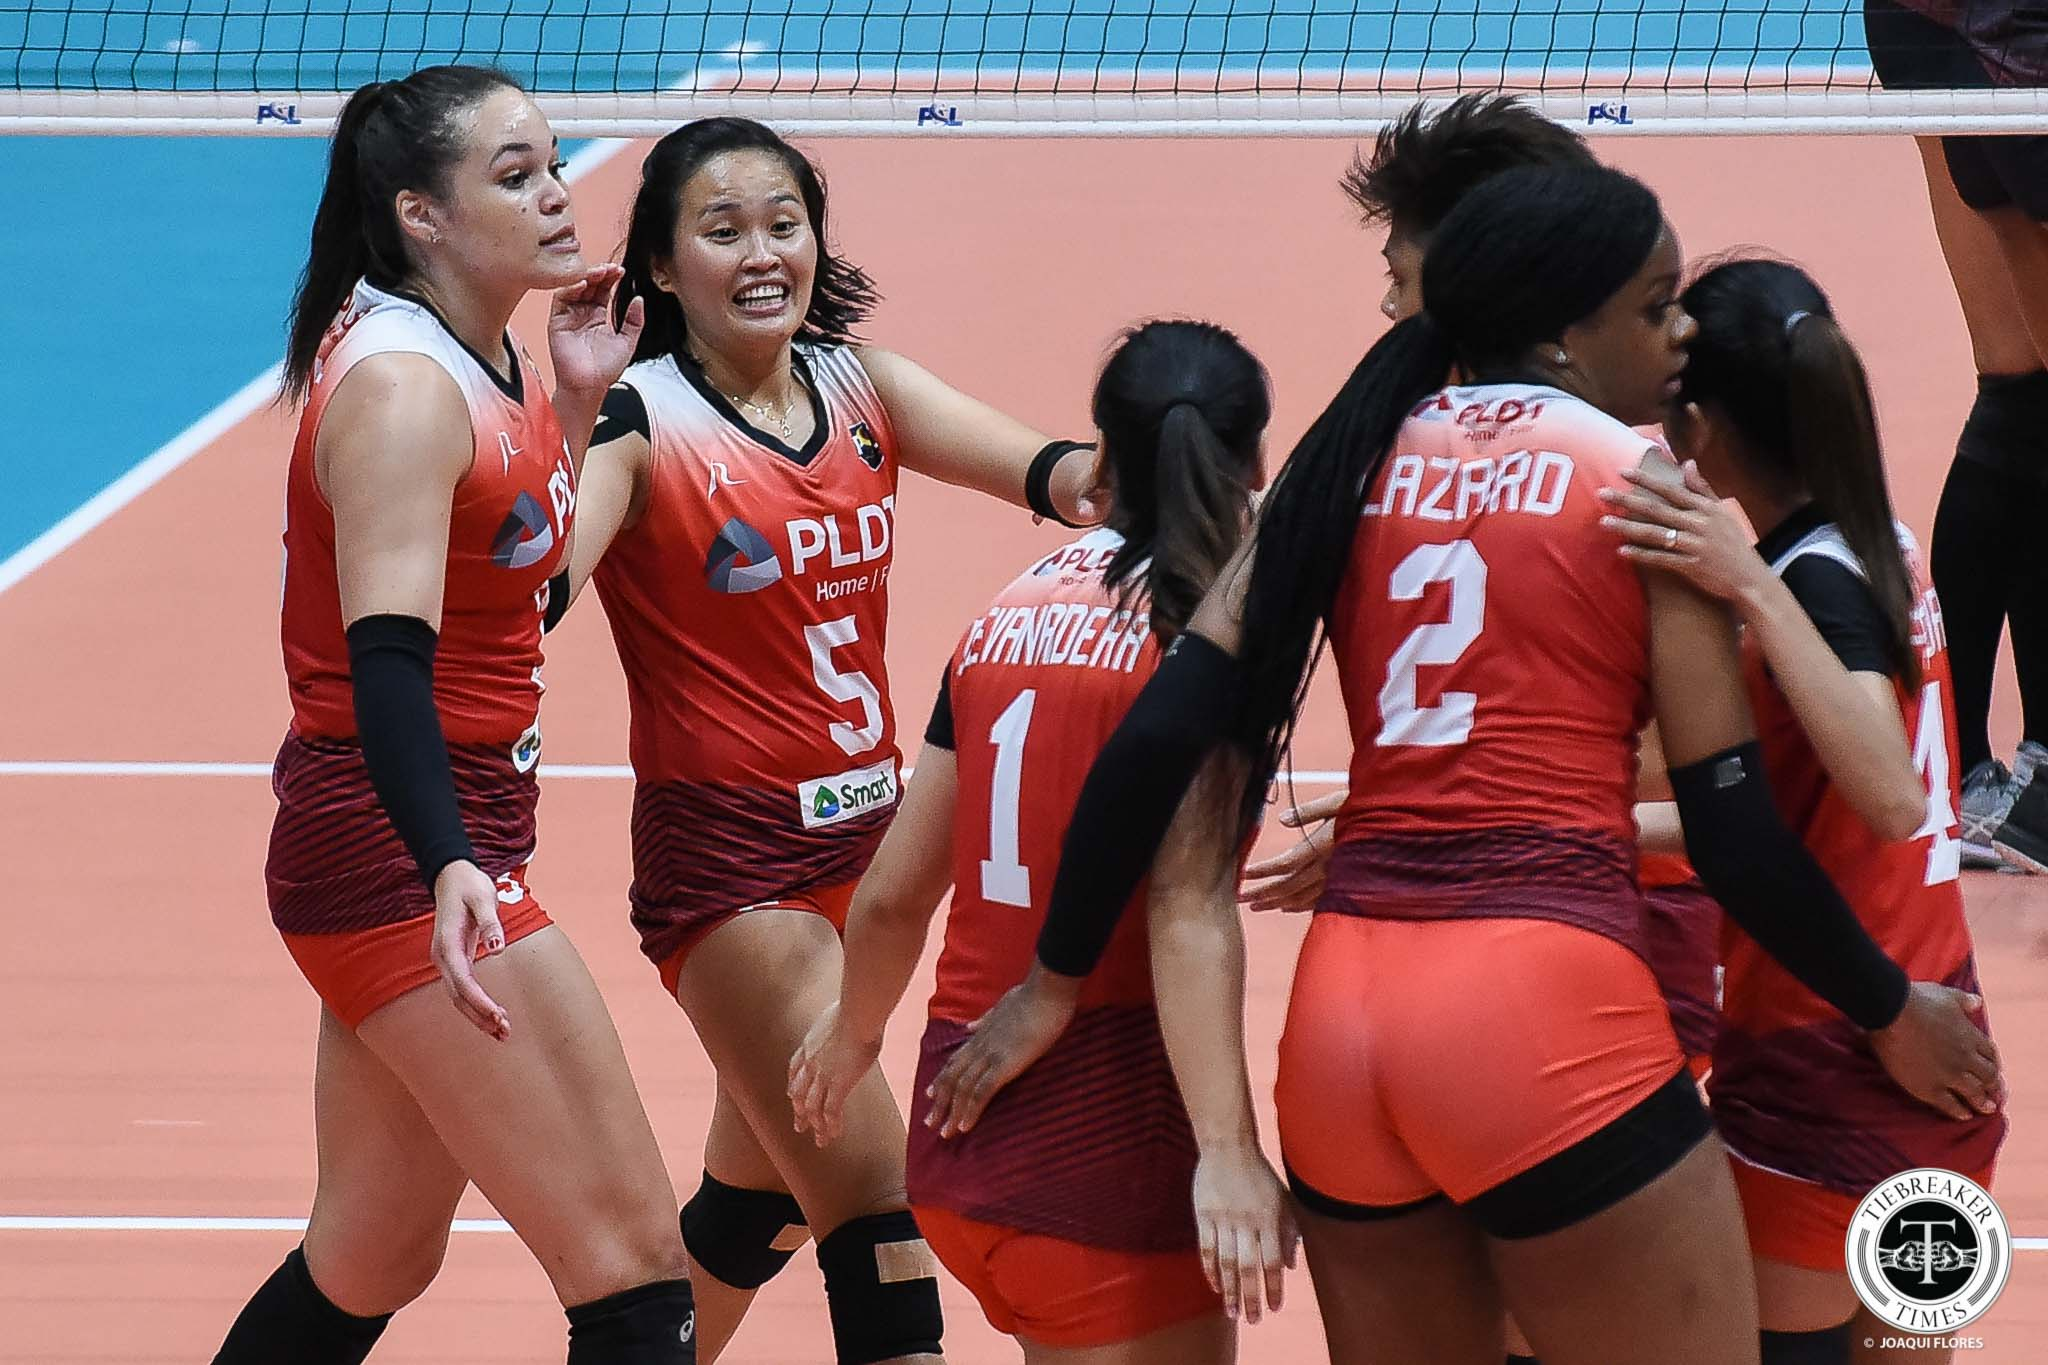 PSL-GP-2019-PLDT-vs.-Cignal-Soltones-6537 'Investment' in PVL pays off for Myla Pablo, Grethcel Soltones News PVL Volleyball  - philippine sports news